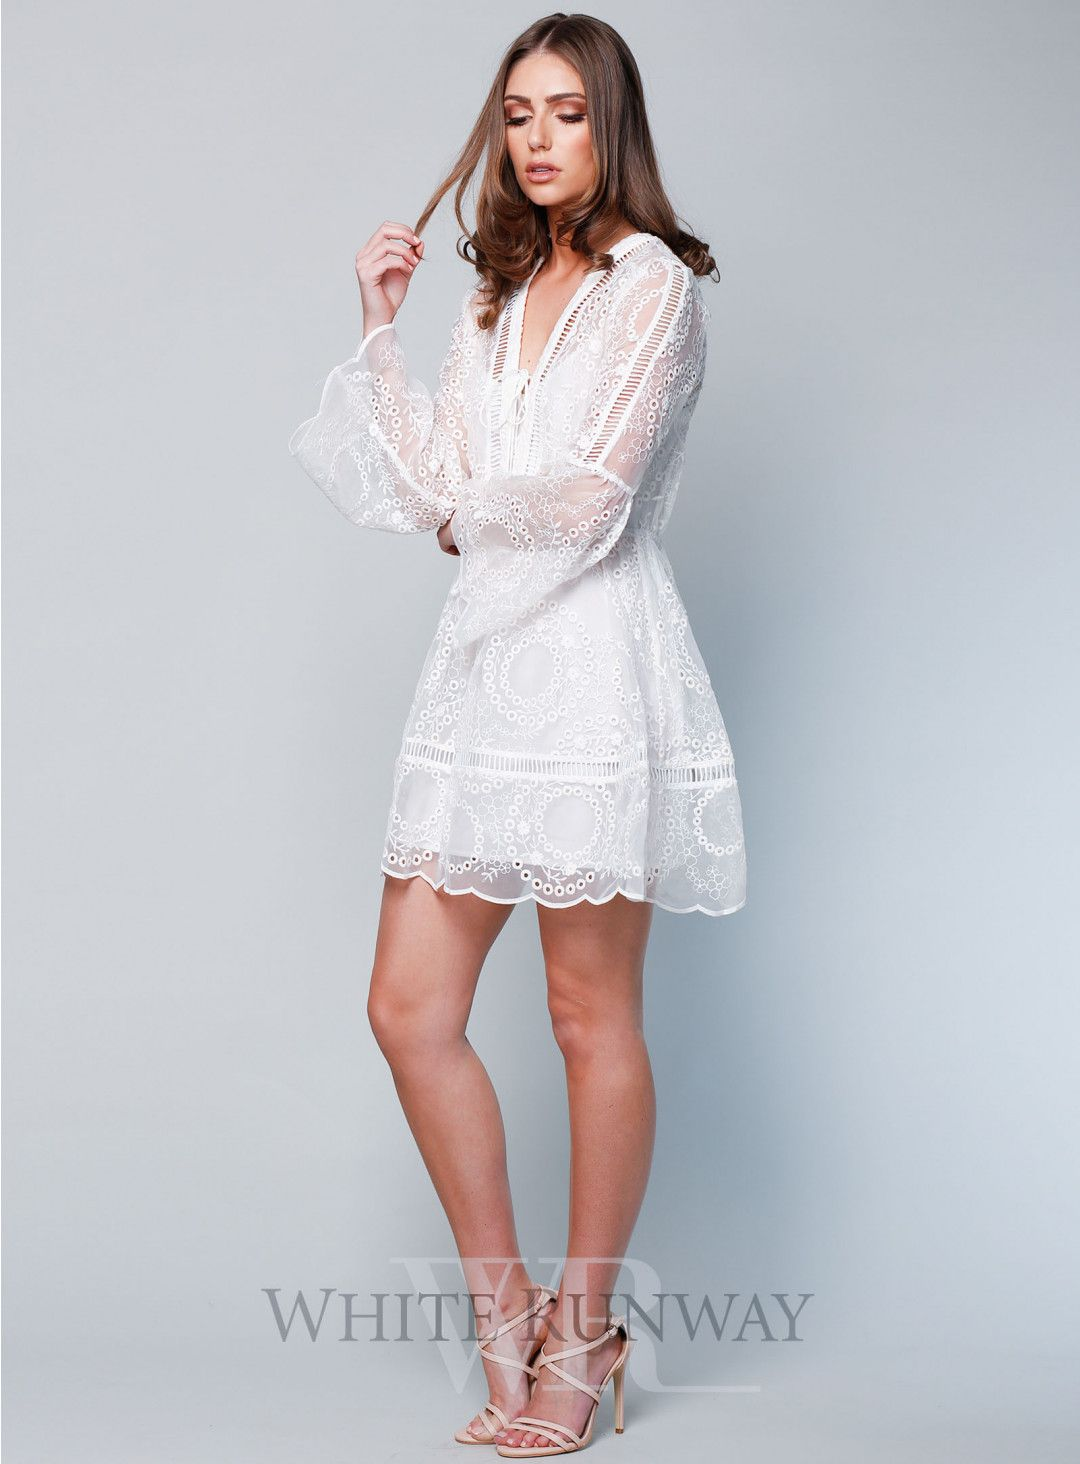 Sweet Pea Dress. A gorgeous mini dress by We Are Kindred. A lace ...